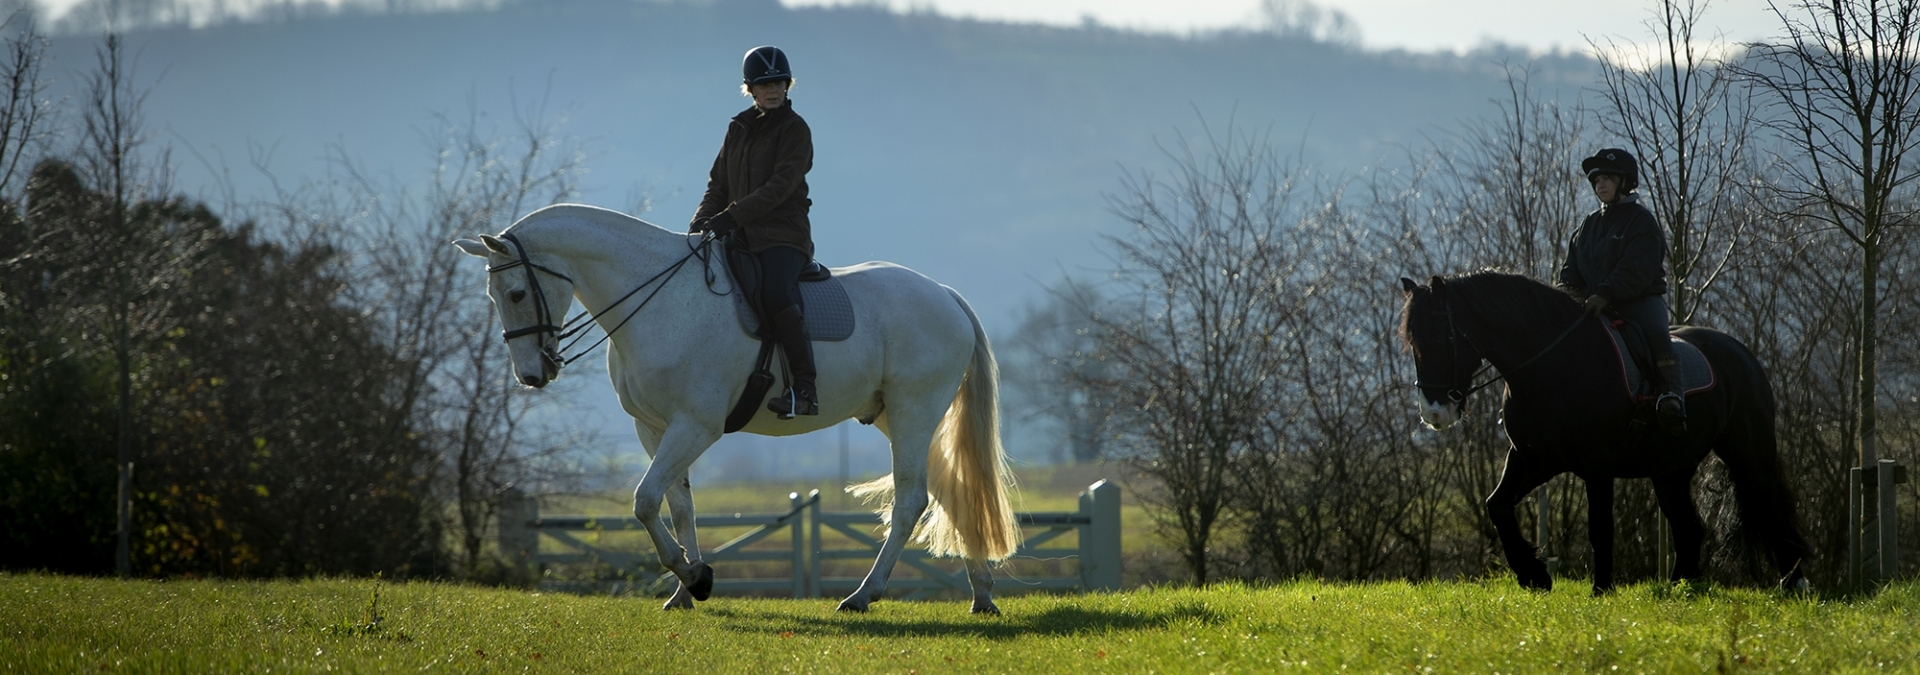 Bridleways and tracks to explore the South Downs